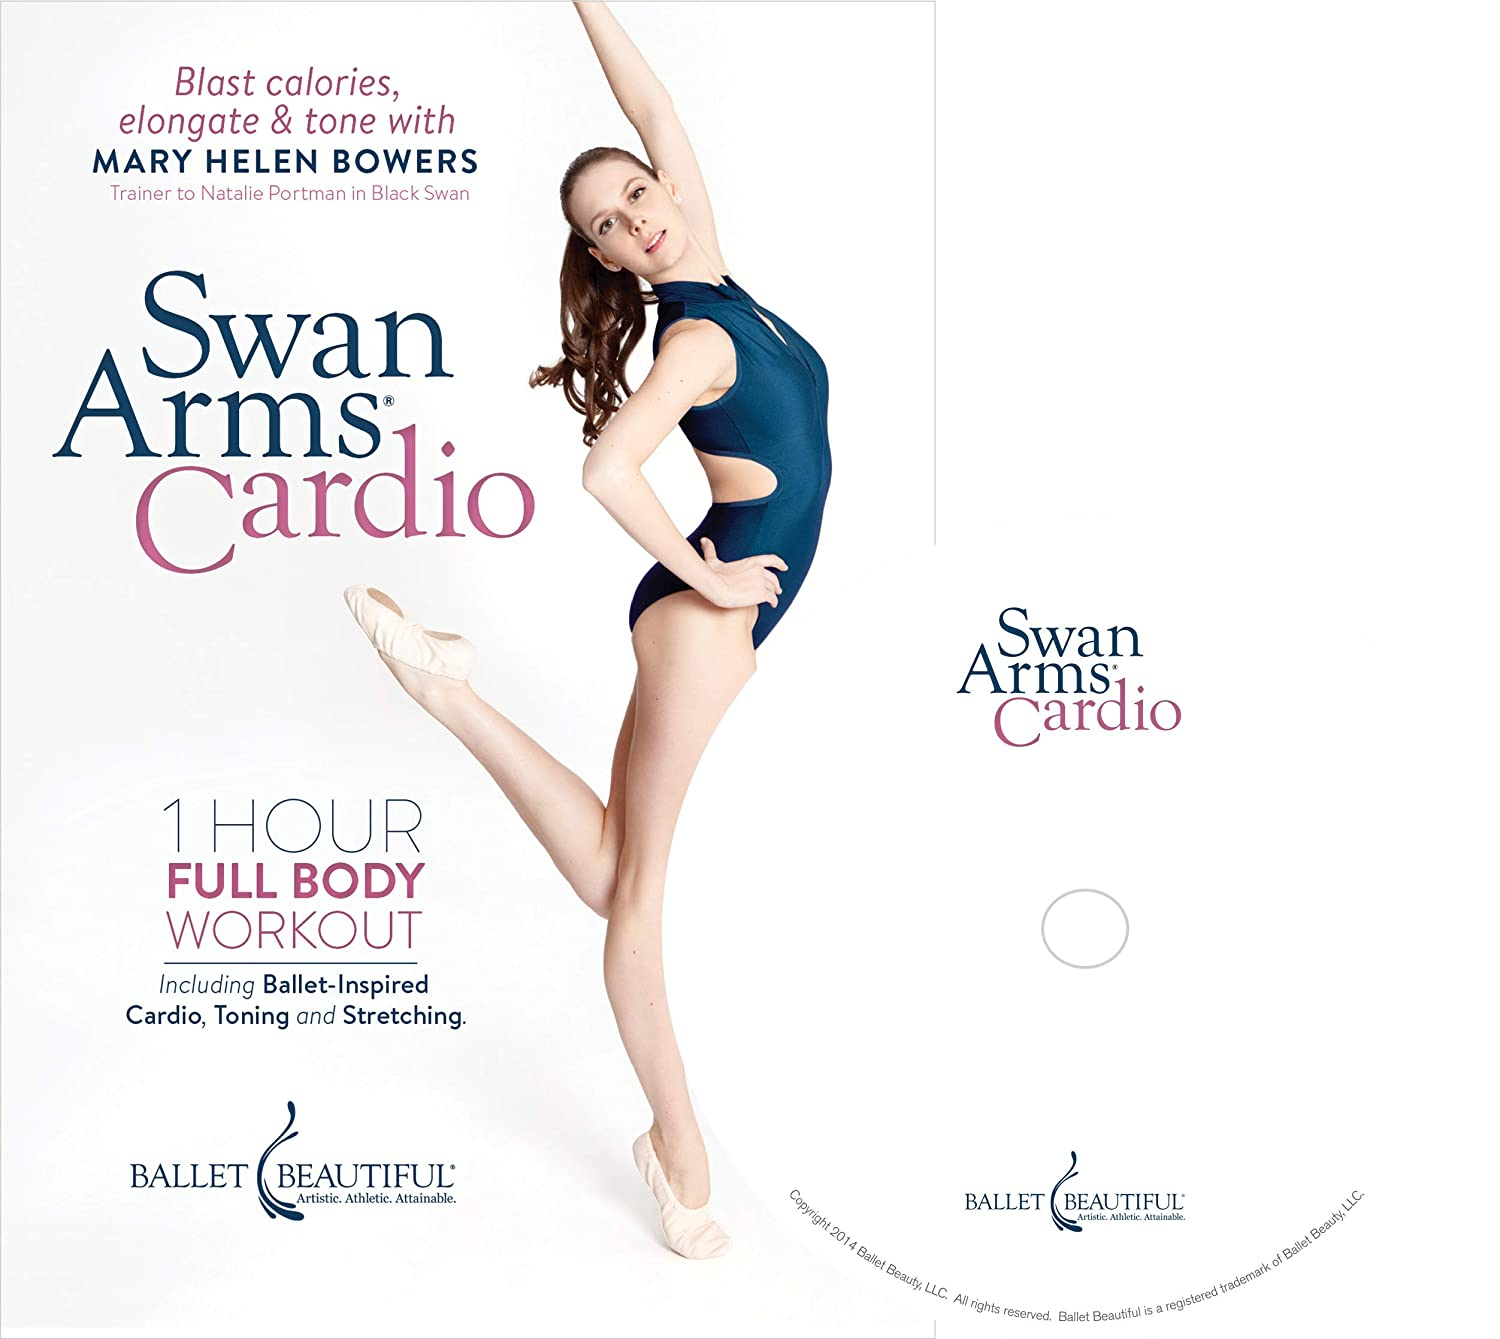 3a66af2f94ff4 Amazon.com: Ballet Beautiful: Swan Arms Cardio: Mary Helen Bowers, Ashley  Connor: Movies & TV